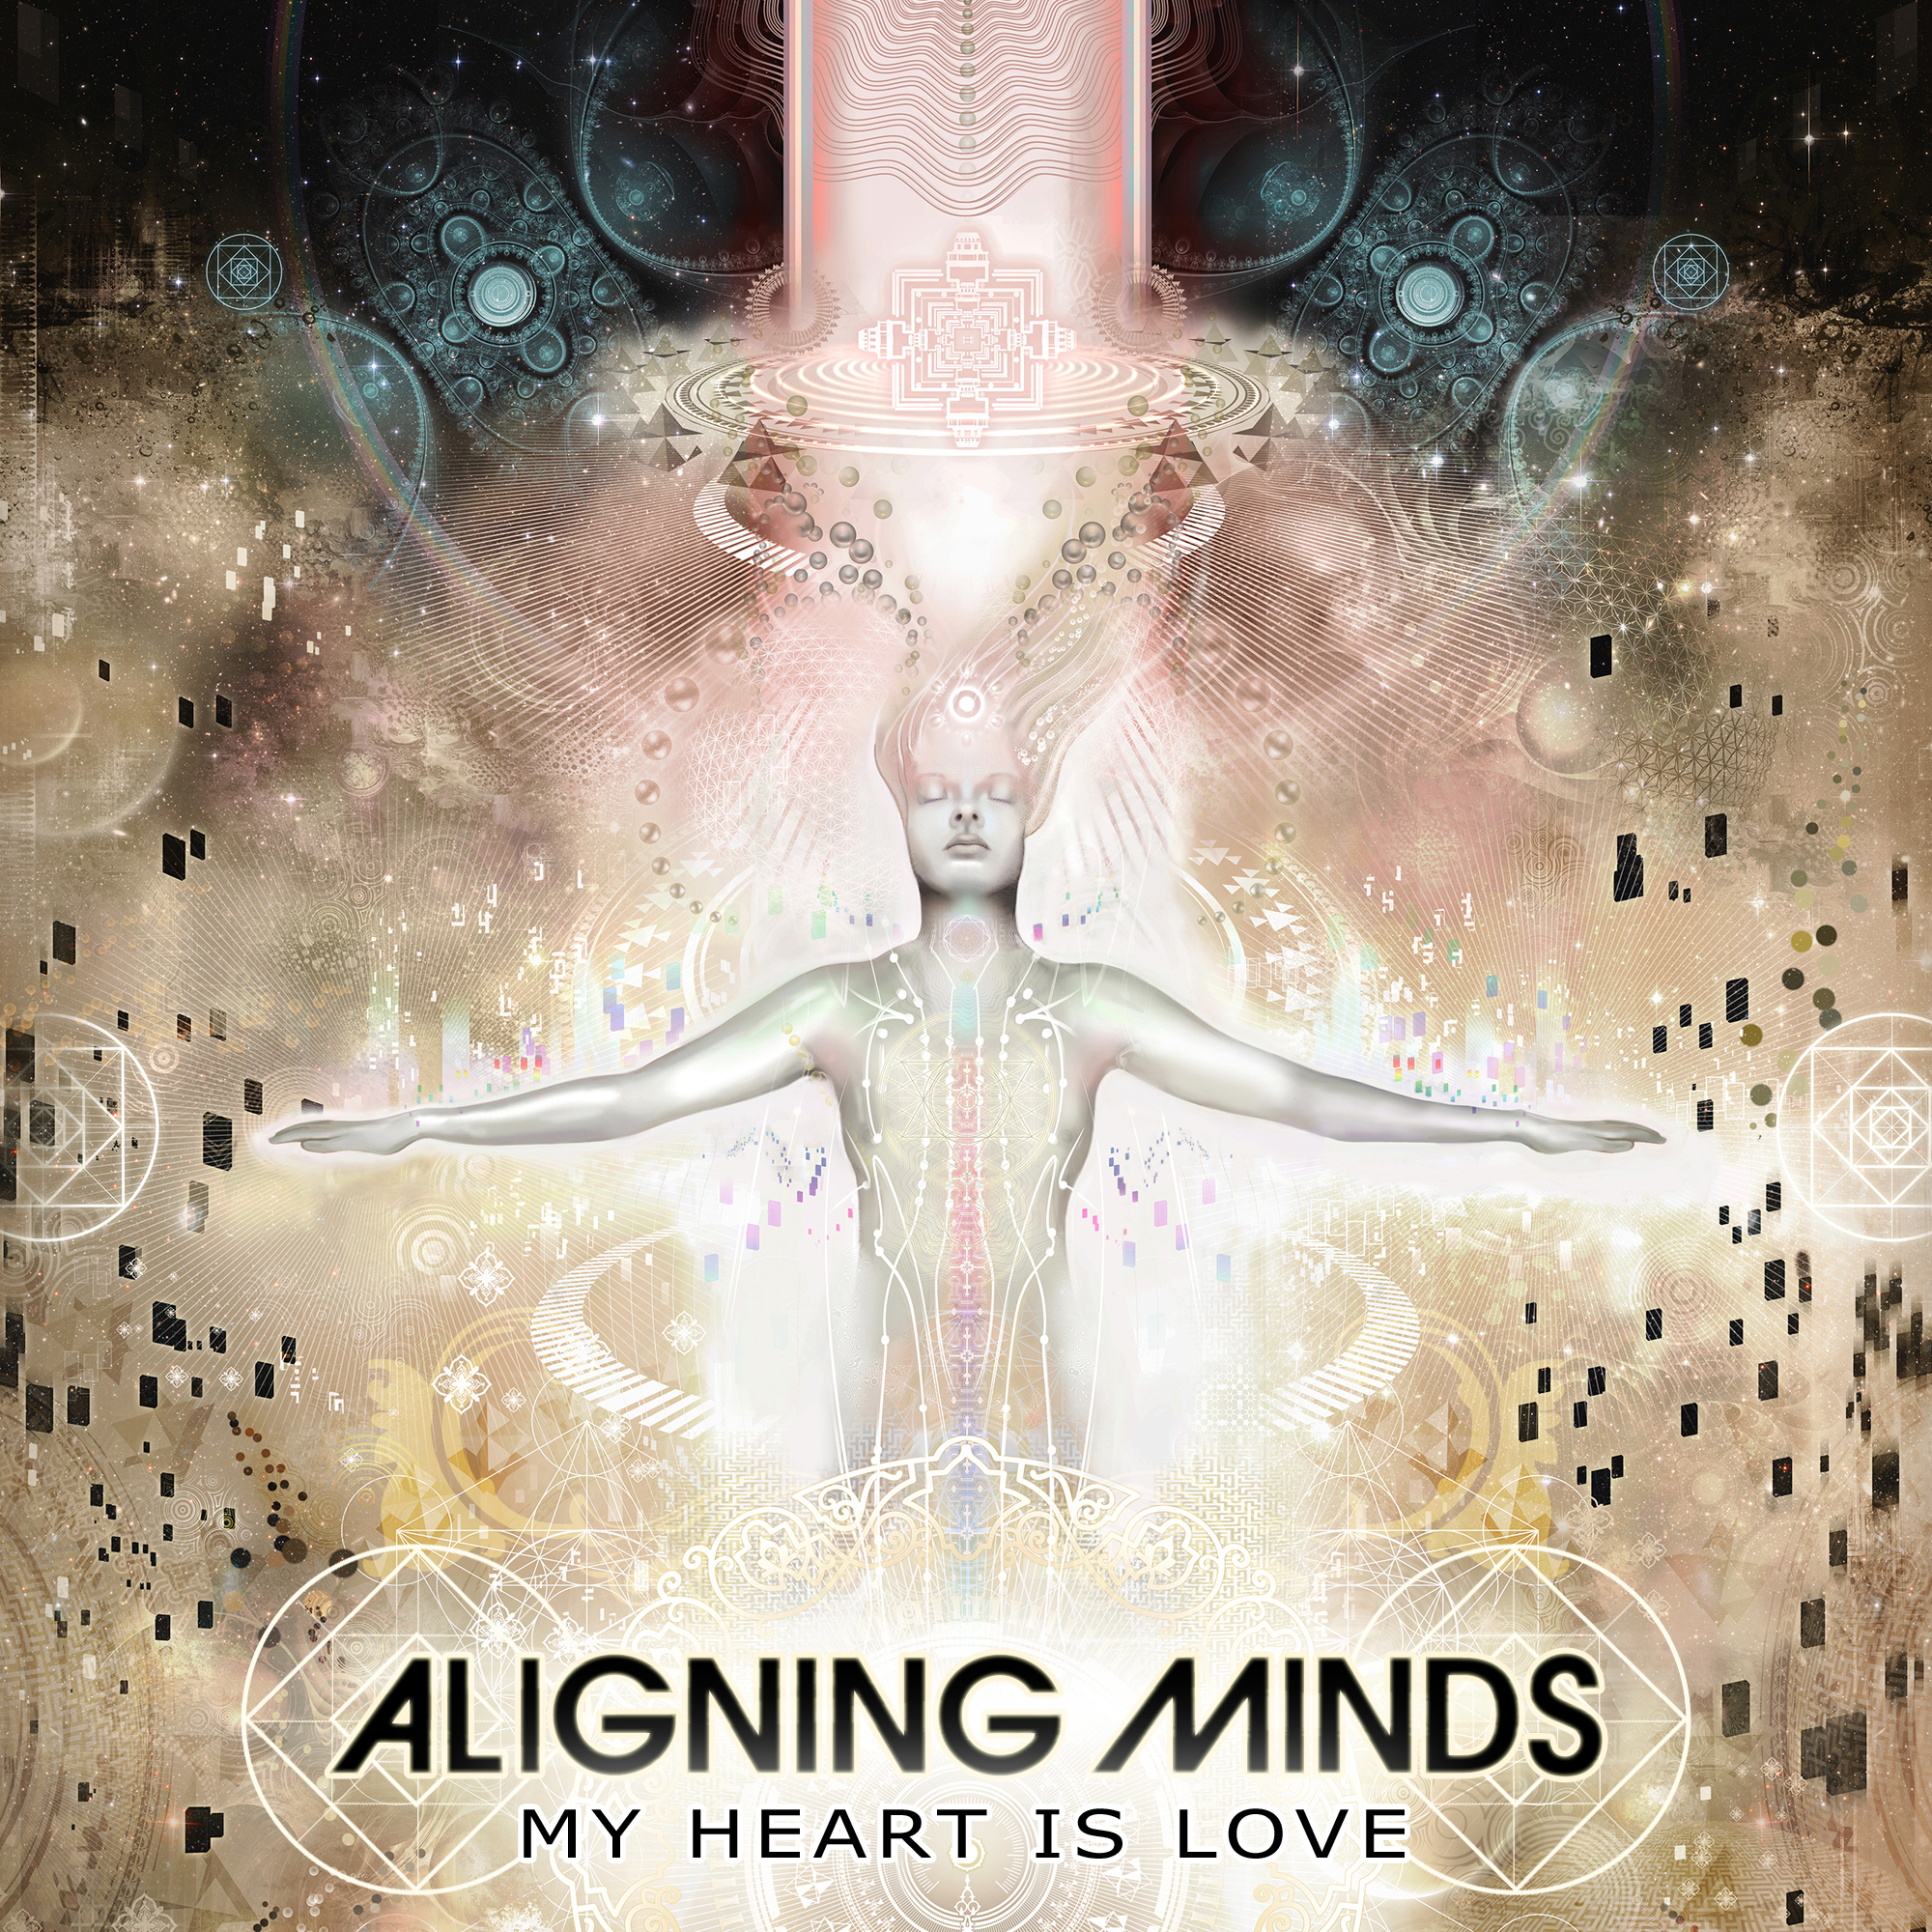 Aligning Minds - My Heart is Love